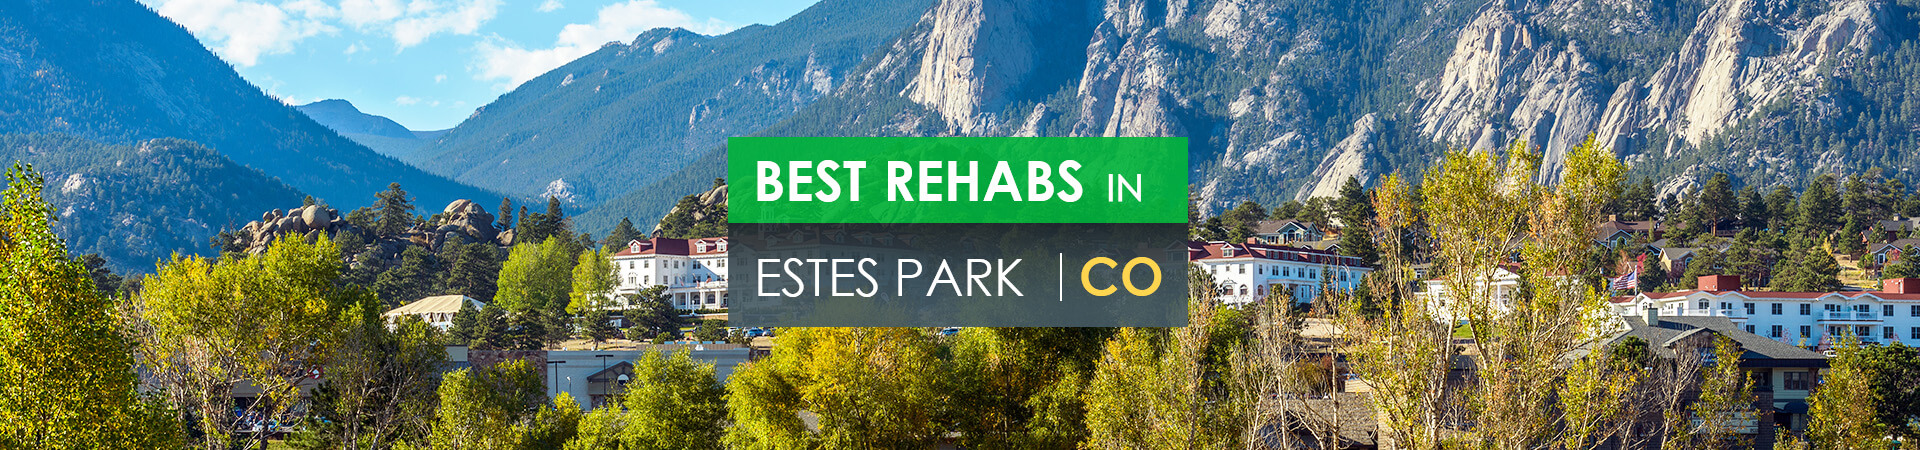 Best rehabs in Estes Park, CO